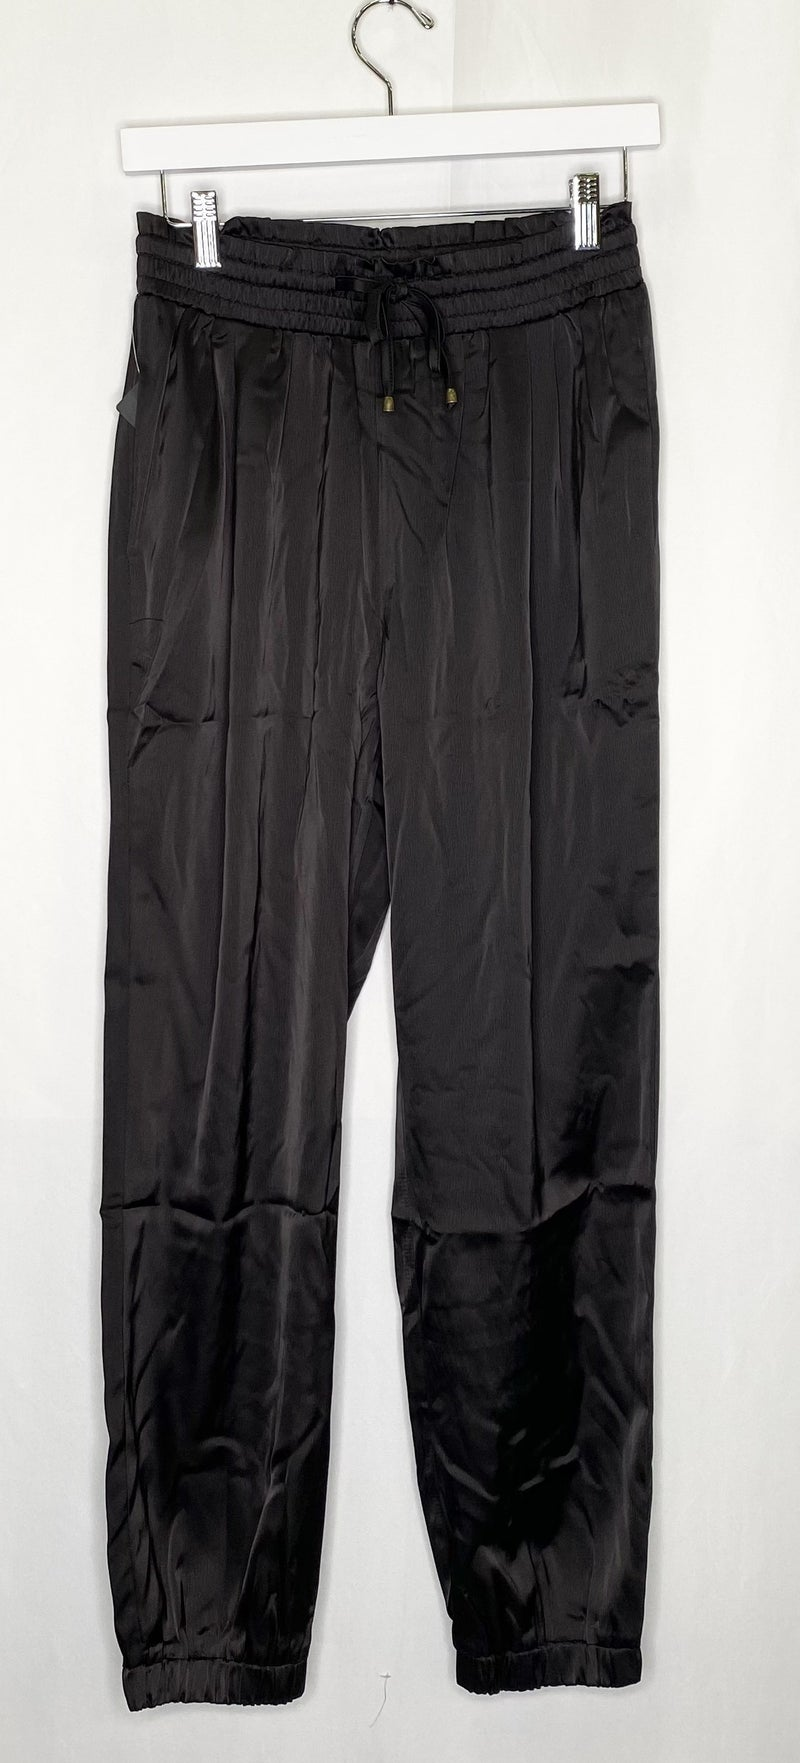 Perfecting The Process Bottoms-3-COLORS